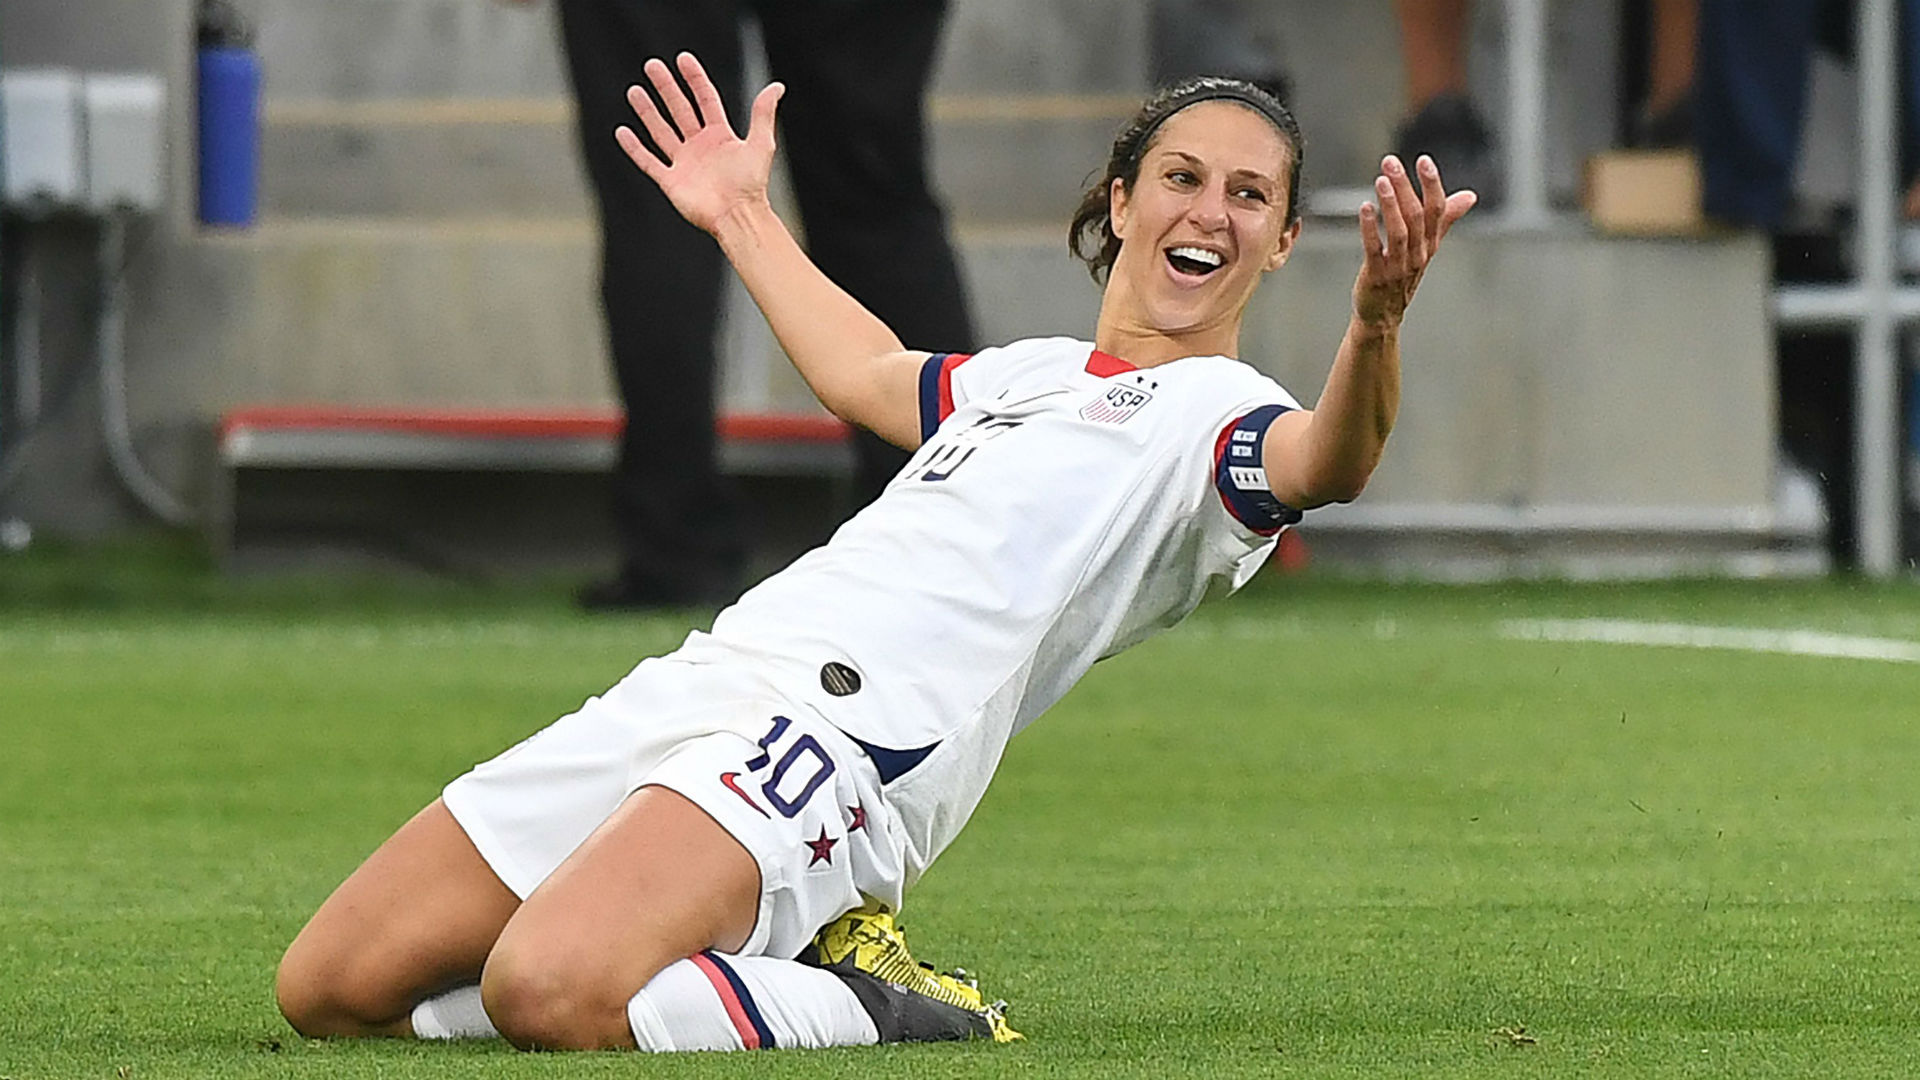 Women's World Cup 2019: Experience key to USA's success